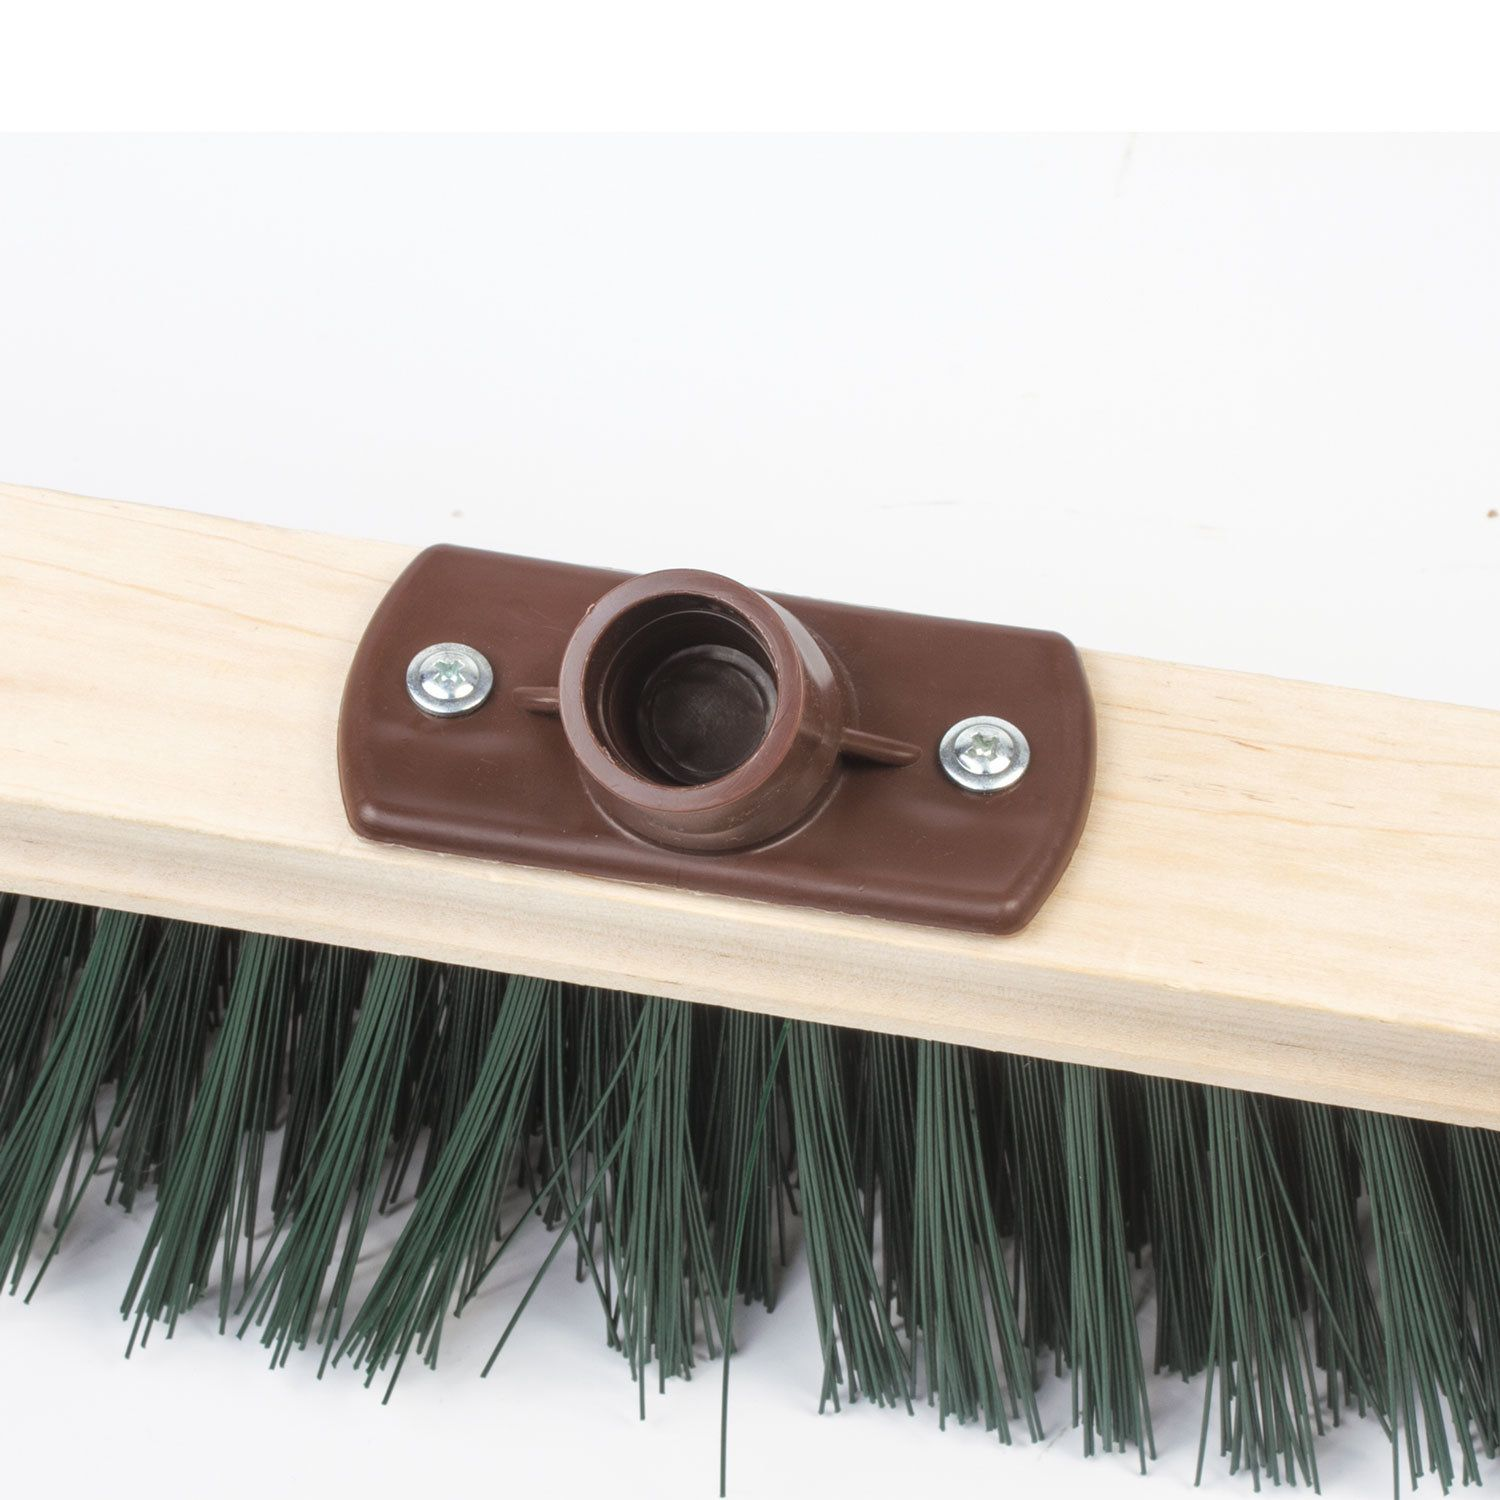 LIMA / EXPERT technical brush for cleaning, width 40cm, soft bristles 7cm, wood, Euro thread